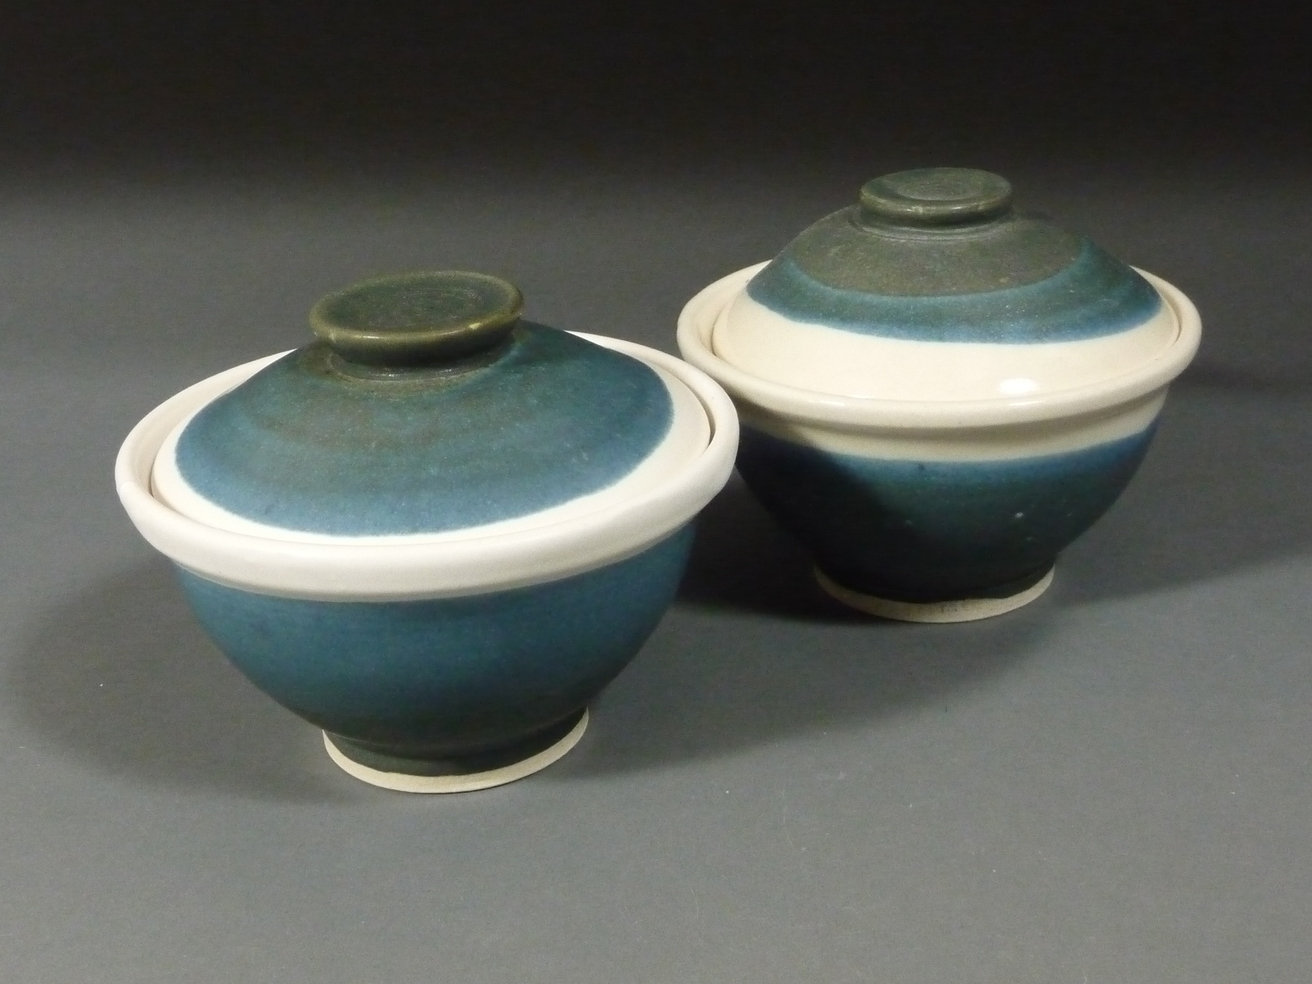 2 Covered bowls $45 each